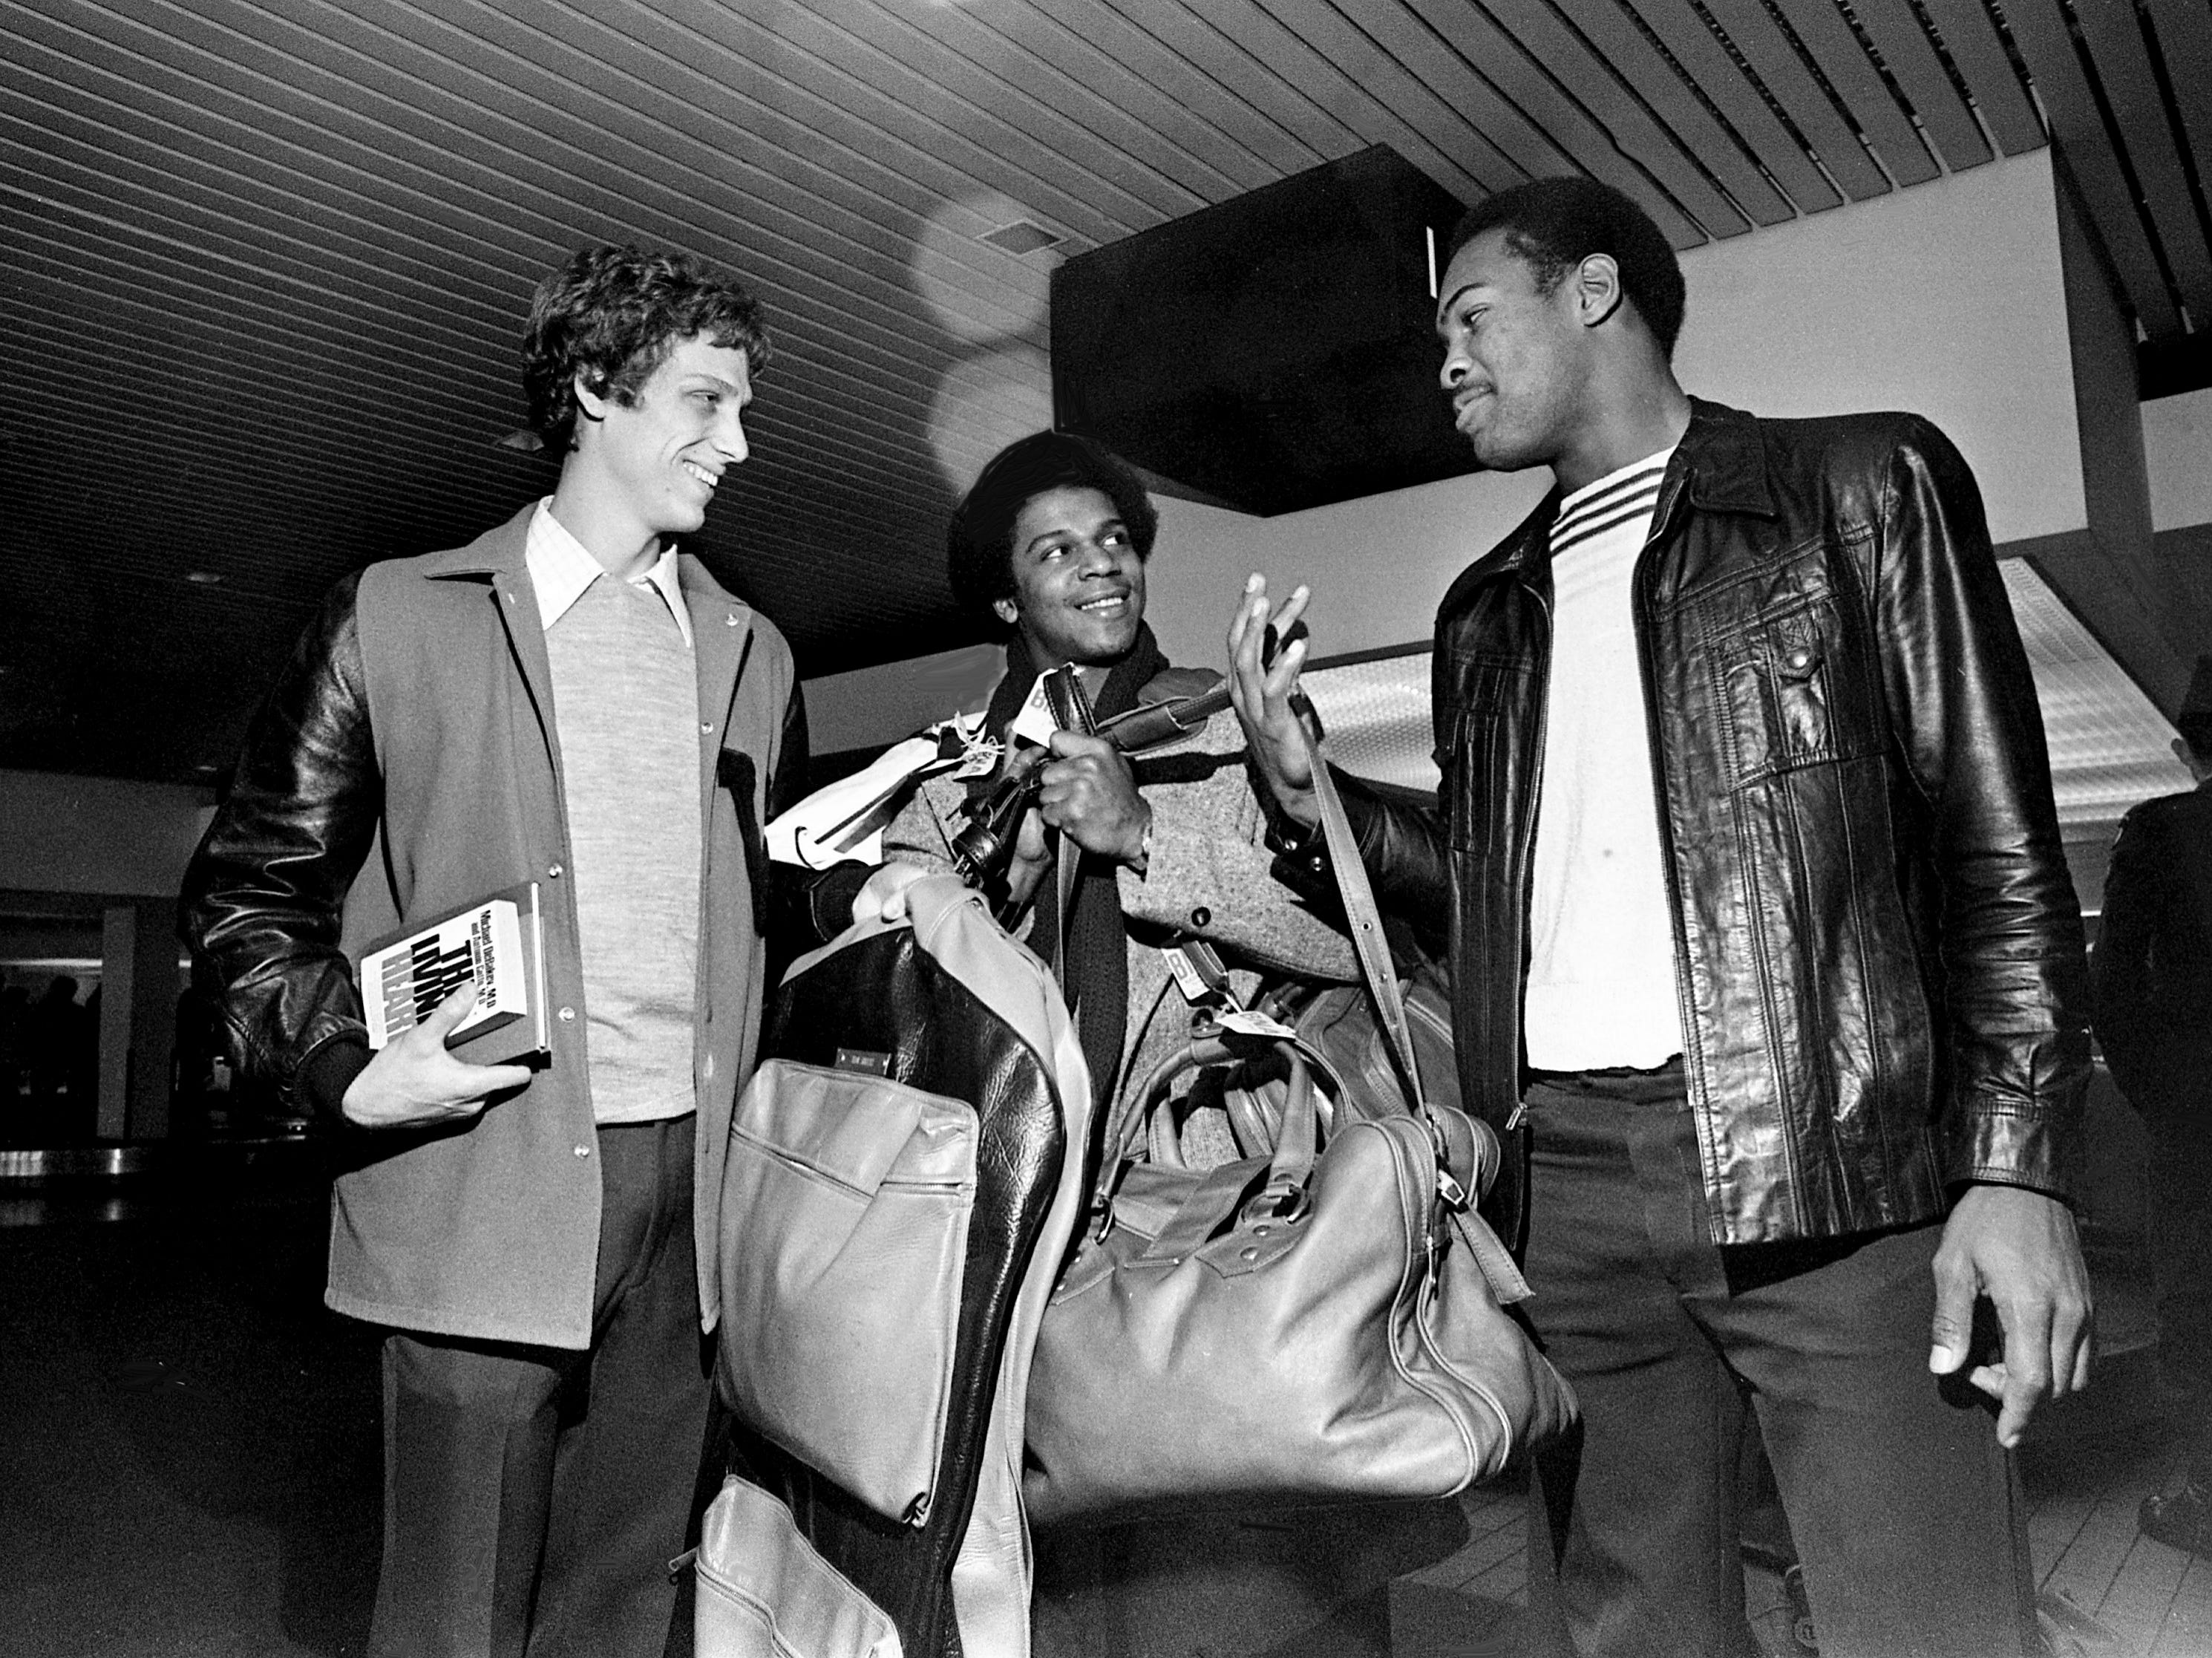 Vanderbilt's basketball team was understandably happy to be back home with their first SEC win after a visit to Auburn. Rounding up luggage at Nashville Municipal Airport on Jan. 4, 1979, are the Commodores stars of their conference opener win, Tom Shultz, left, Tommy Springer and Greg Fuller.